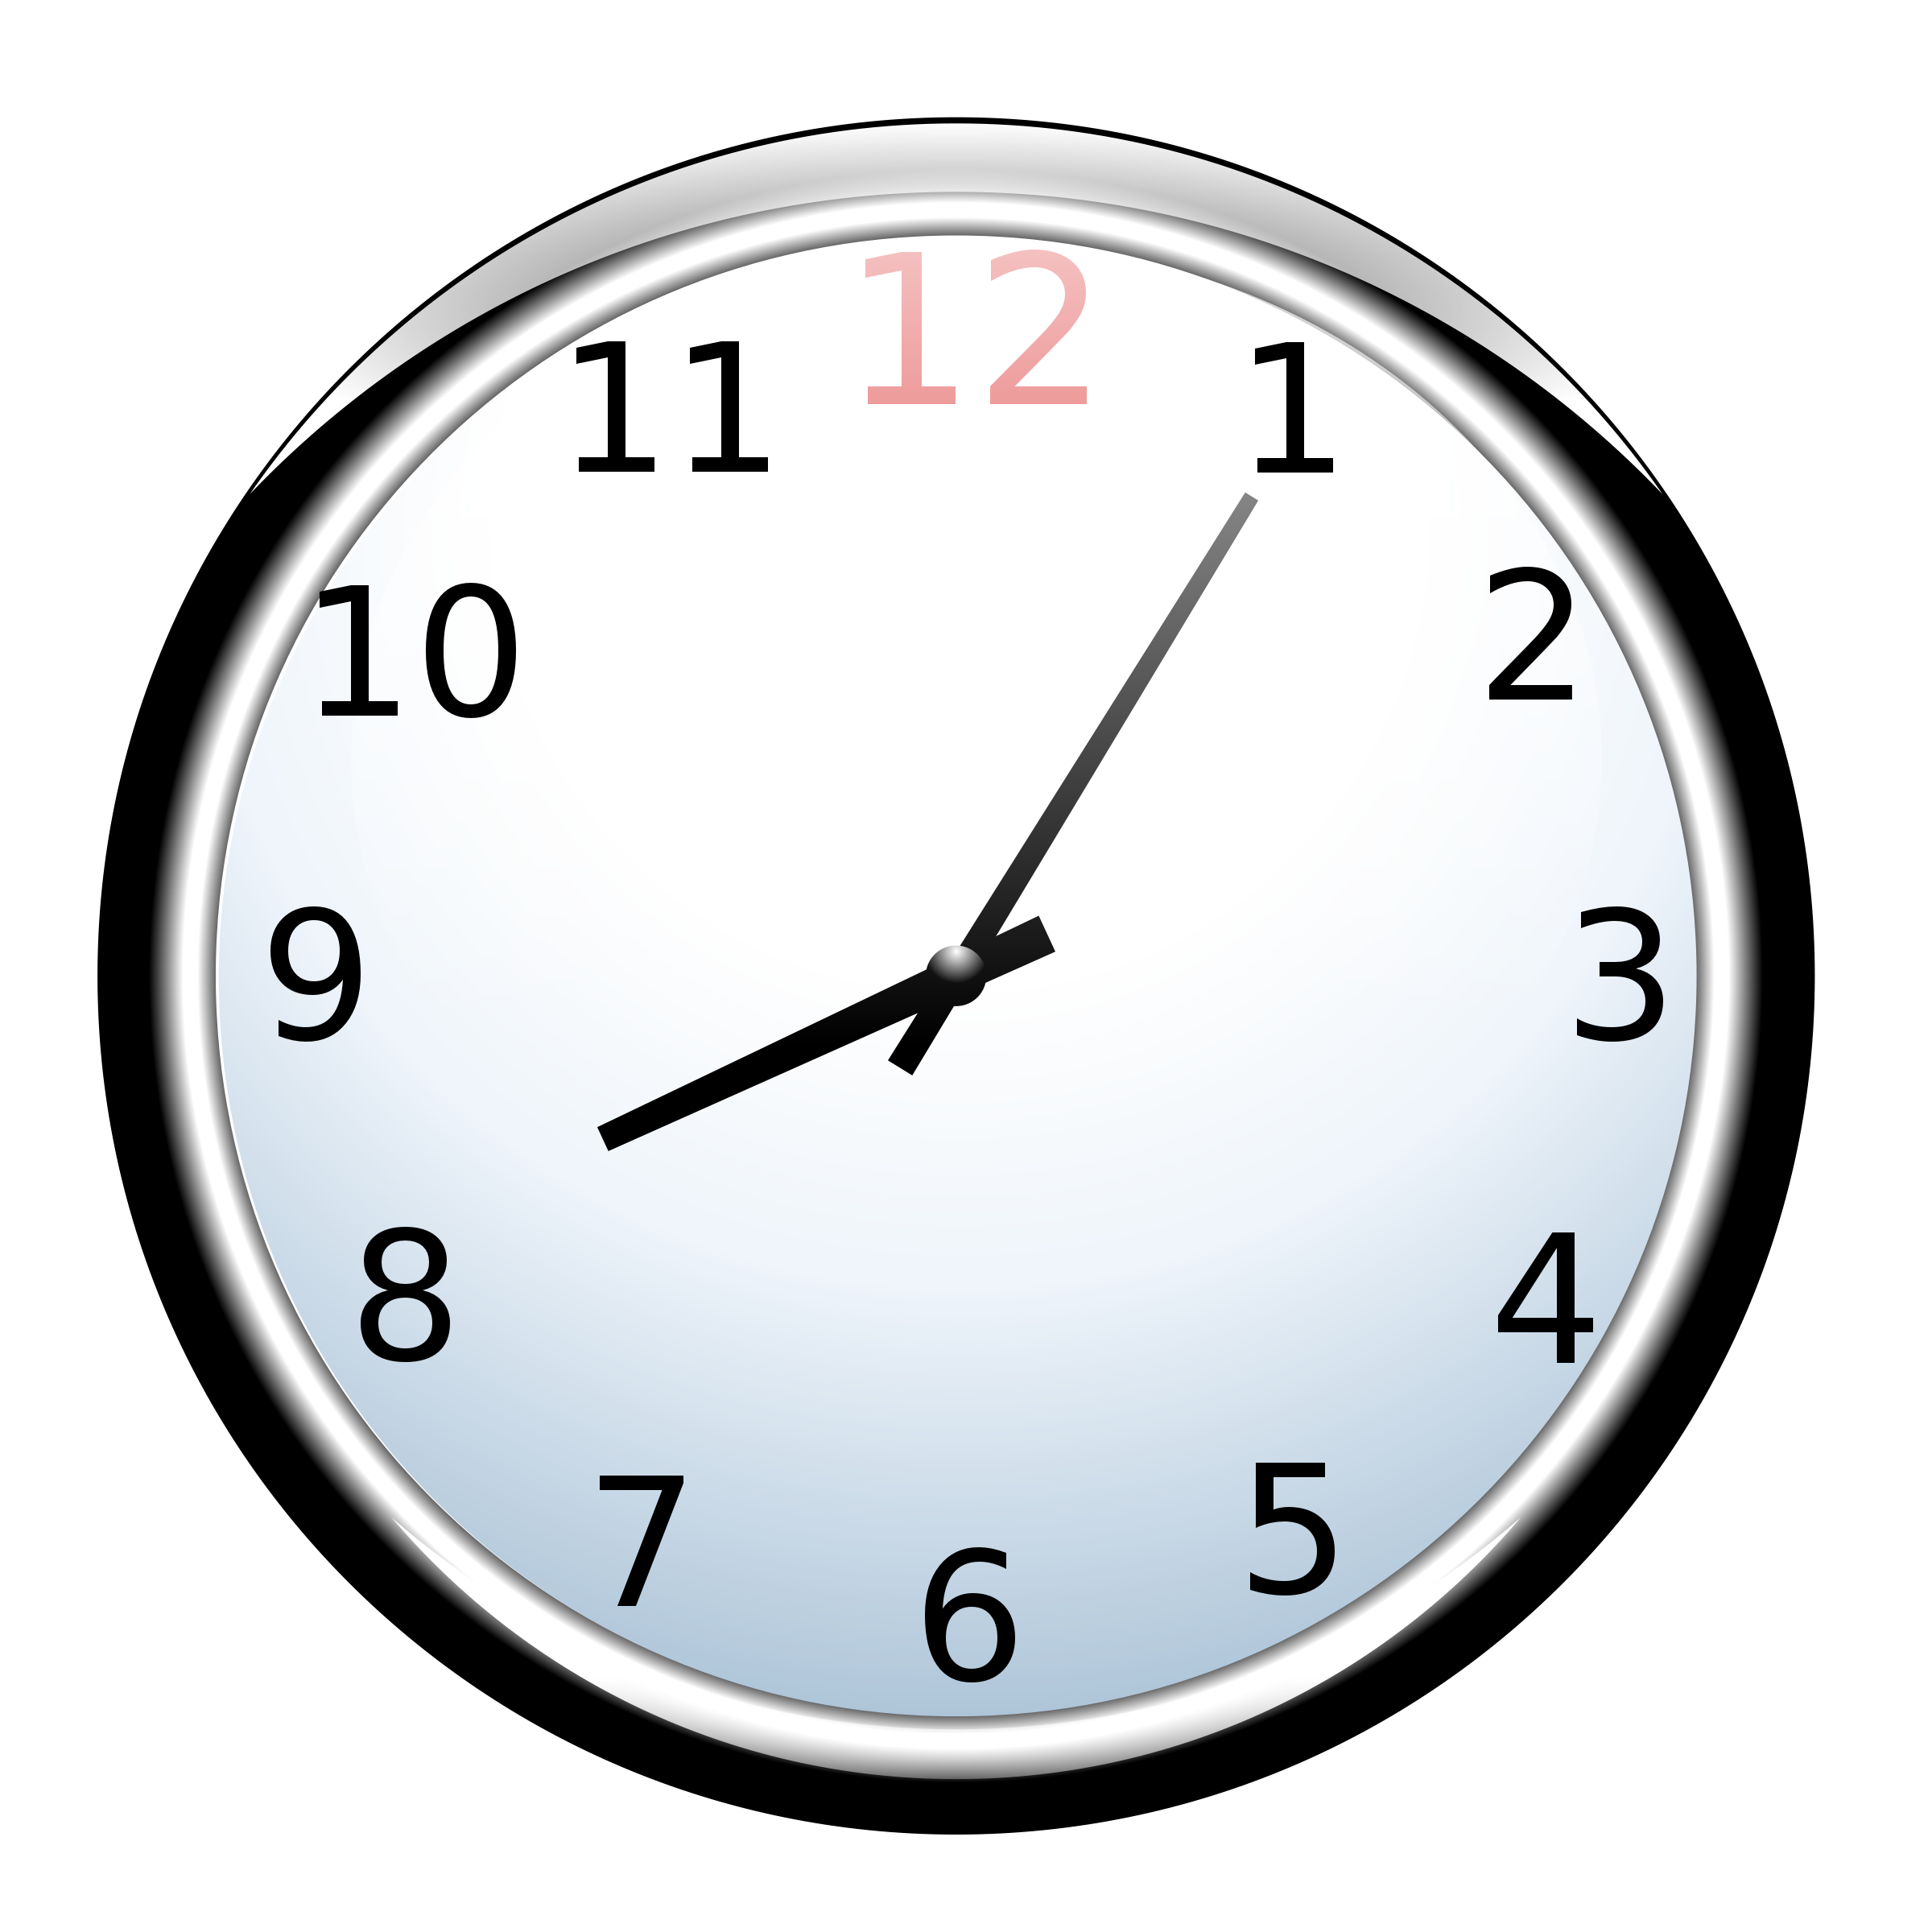 Free Png Clock, Download Free Clip Art, Free Clip Art on.